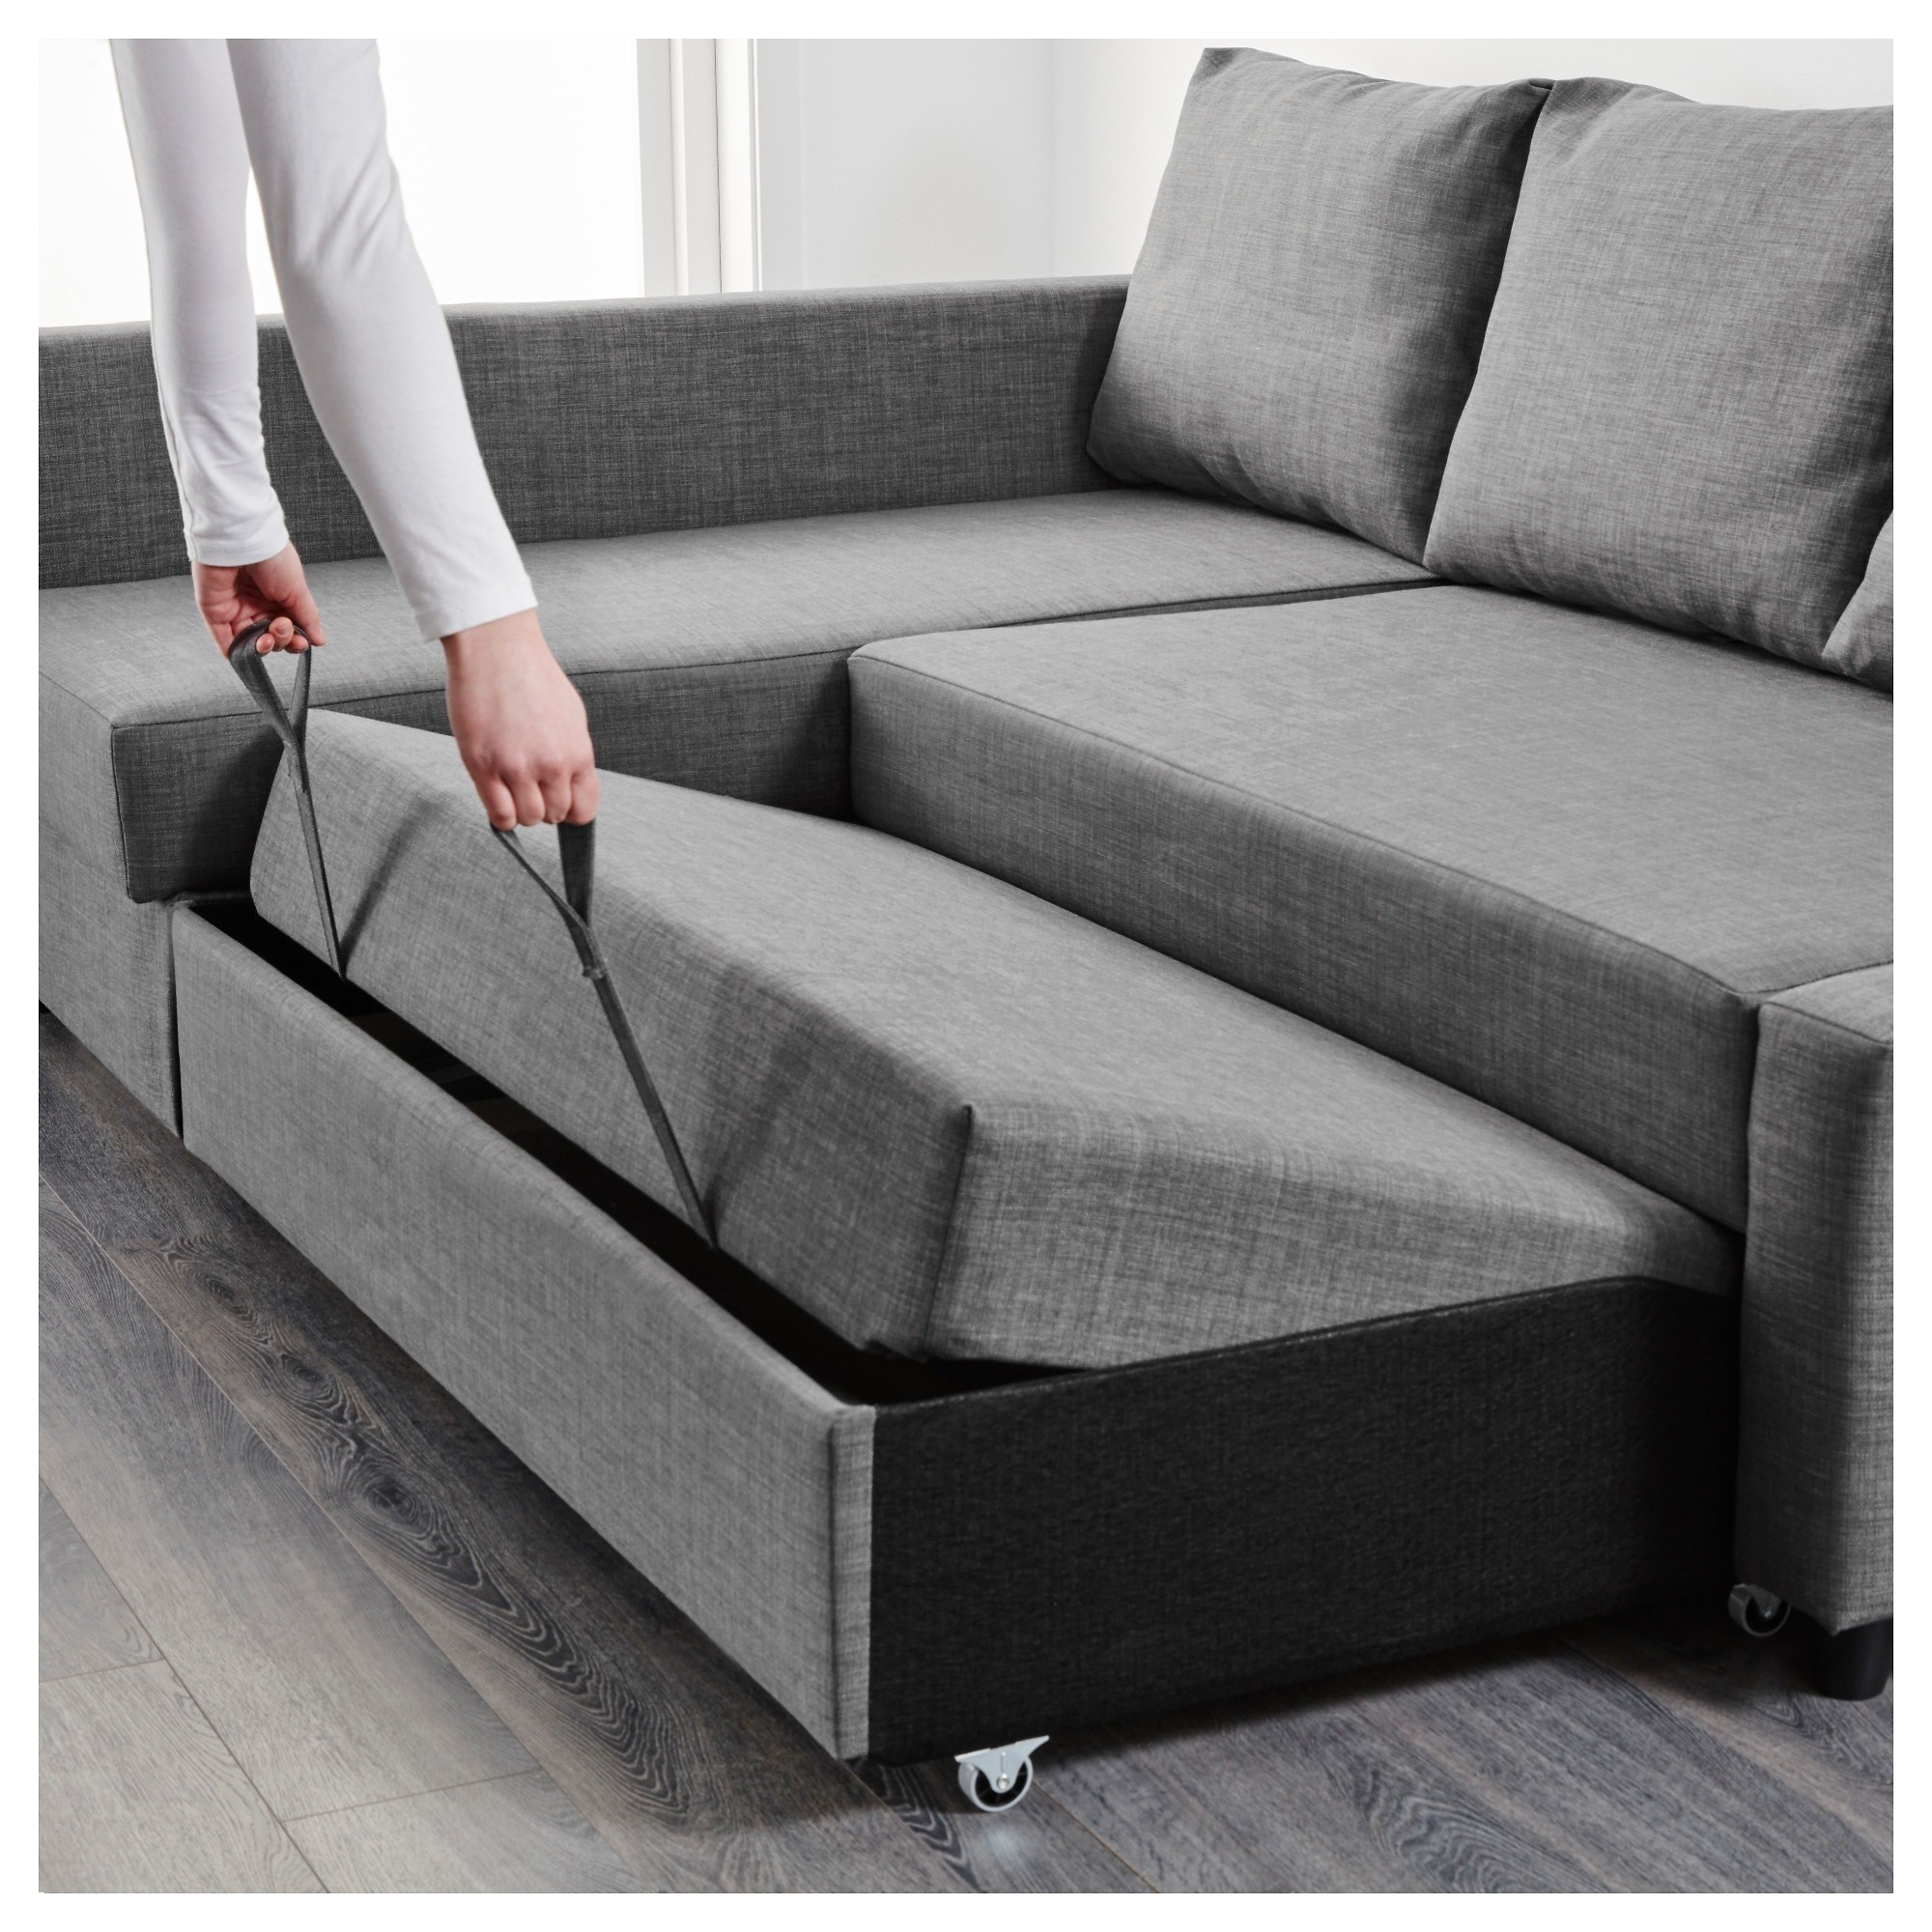 Friheten sofa Bed Ikea Reviews Ikea Schlafsofas Test 22 Lovely Ikea Stockholm sofa Review